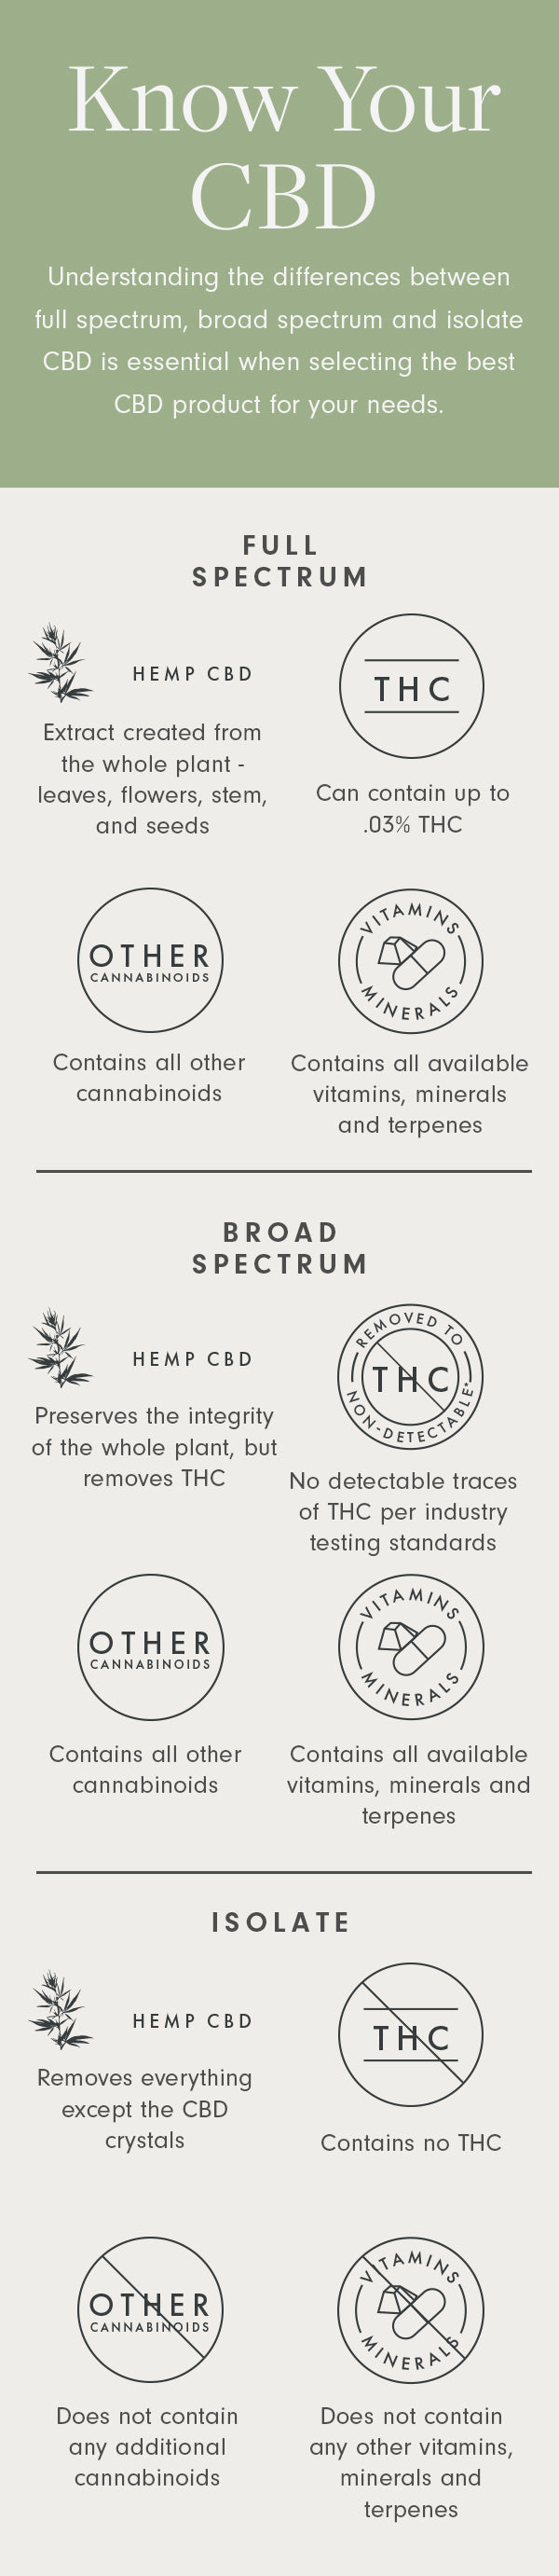 An Sagely Naturals infographic showing the difference between full spectrum CBD, broad spectrum CBD and CBD isolate.